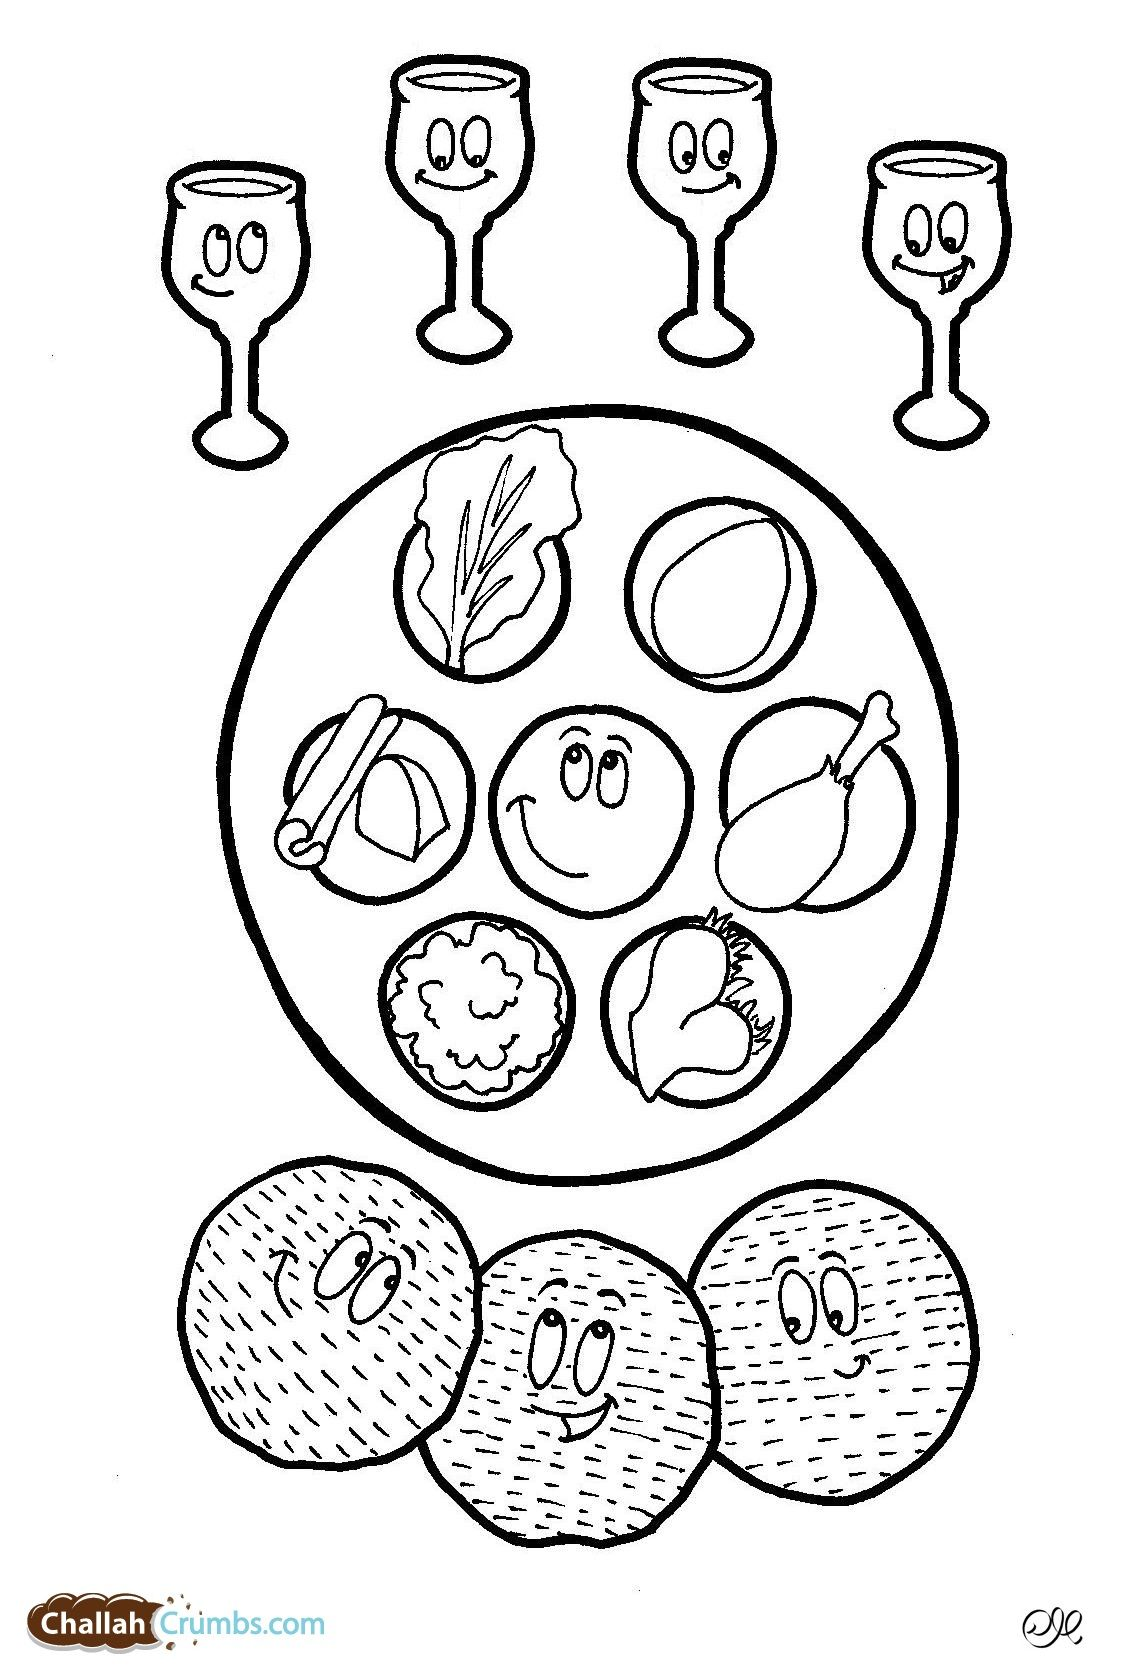 This coloring page has it all: four cups of wine, three pieces of ...